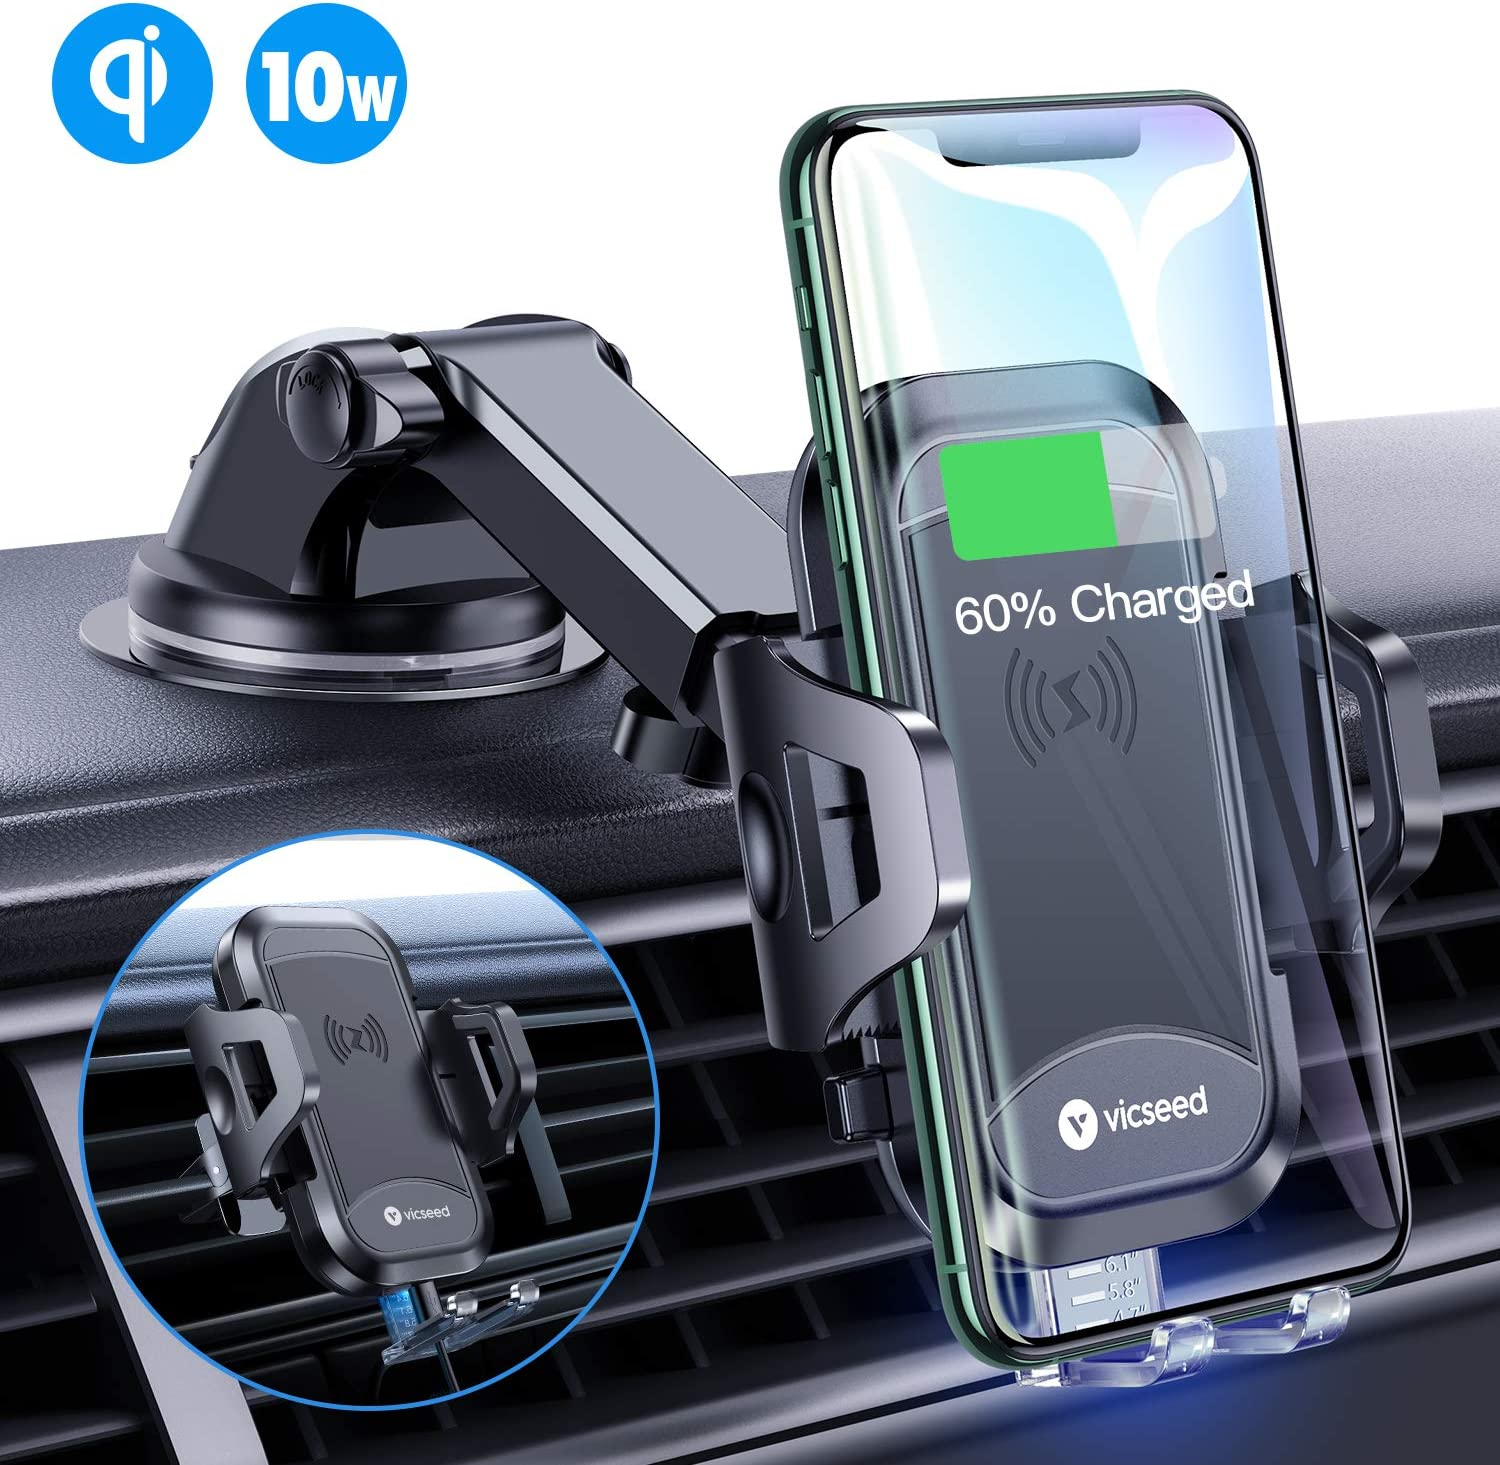 VICSEED Universal Wireless Car Charger Mount Qi Fast Charging 10W 7.5W Dashboard Windshield Air Vent Phone Holder for Car Mount Fit for iPhone SE 11 Pro Max XS XR Samsung S20 Note10 Note9 S10 S9 LG